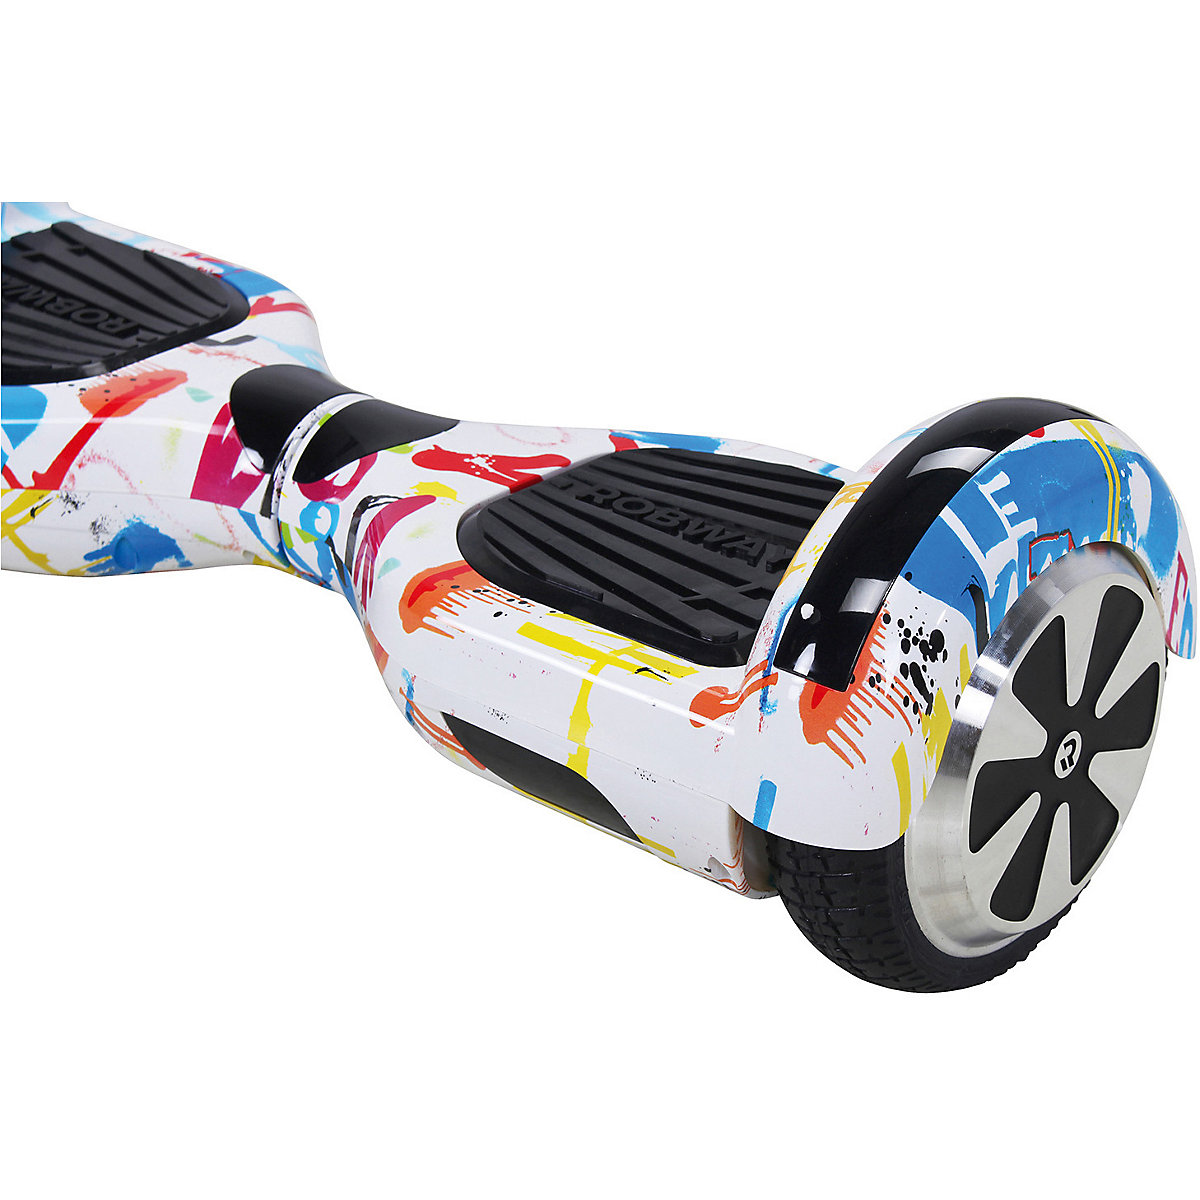 e balance hoverboard robway w1 6 5 zoll mit app funktion bunt robway mytoys. Black Bedroom Furniture Sets. Home Design Ideas